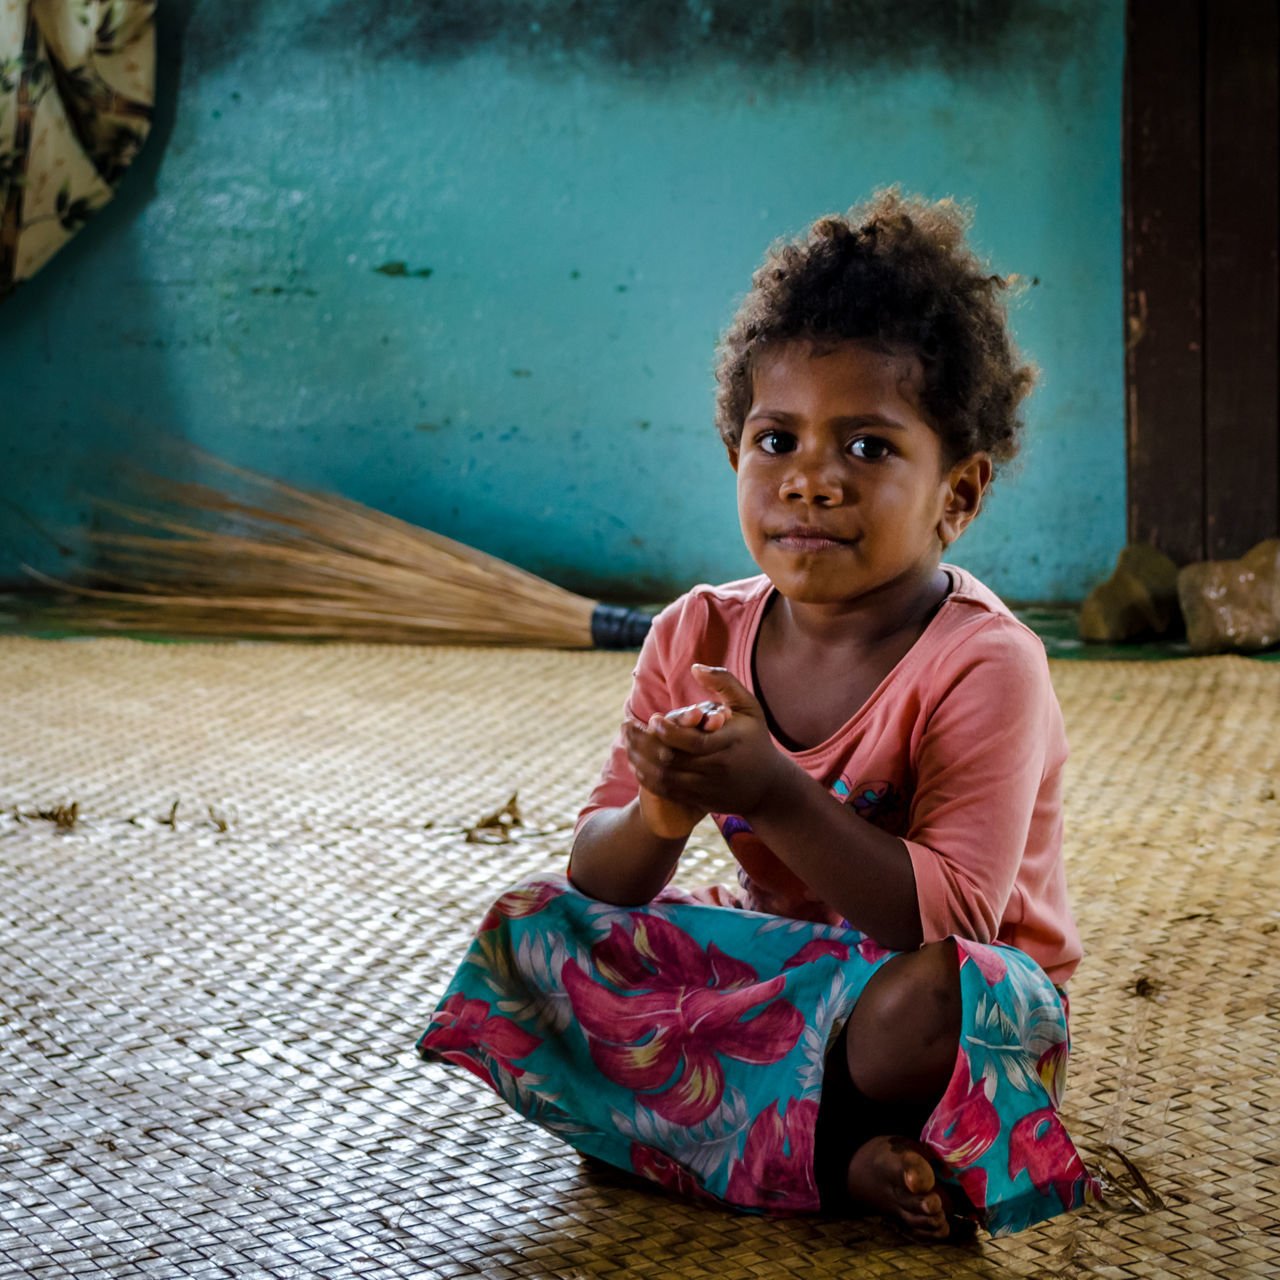 Clap three times Childhood Children Photography Clap Day Fiji Girl Indoors  Kava Kava Ceremony Kid Lifestyles Looking At Camera Nausori Highlands One Person Portrait Real People Sitting The Portraitist - 2017 EyeEm Awards Neon Life